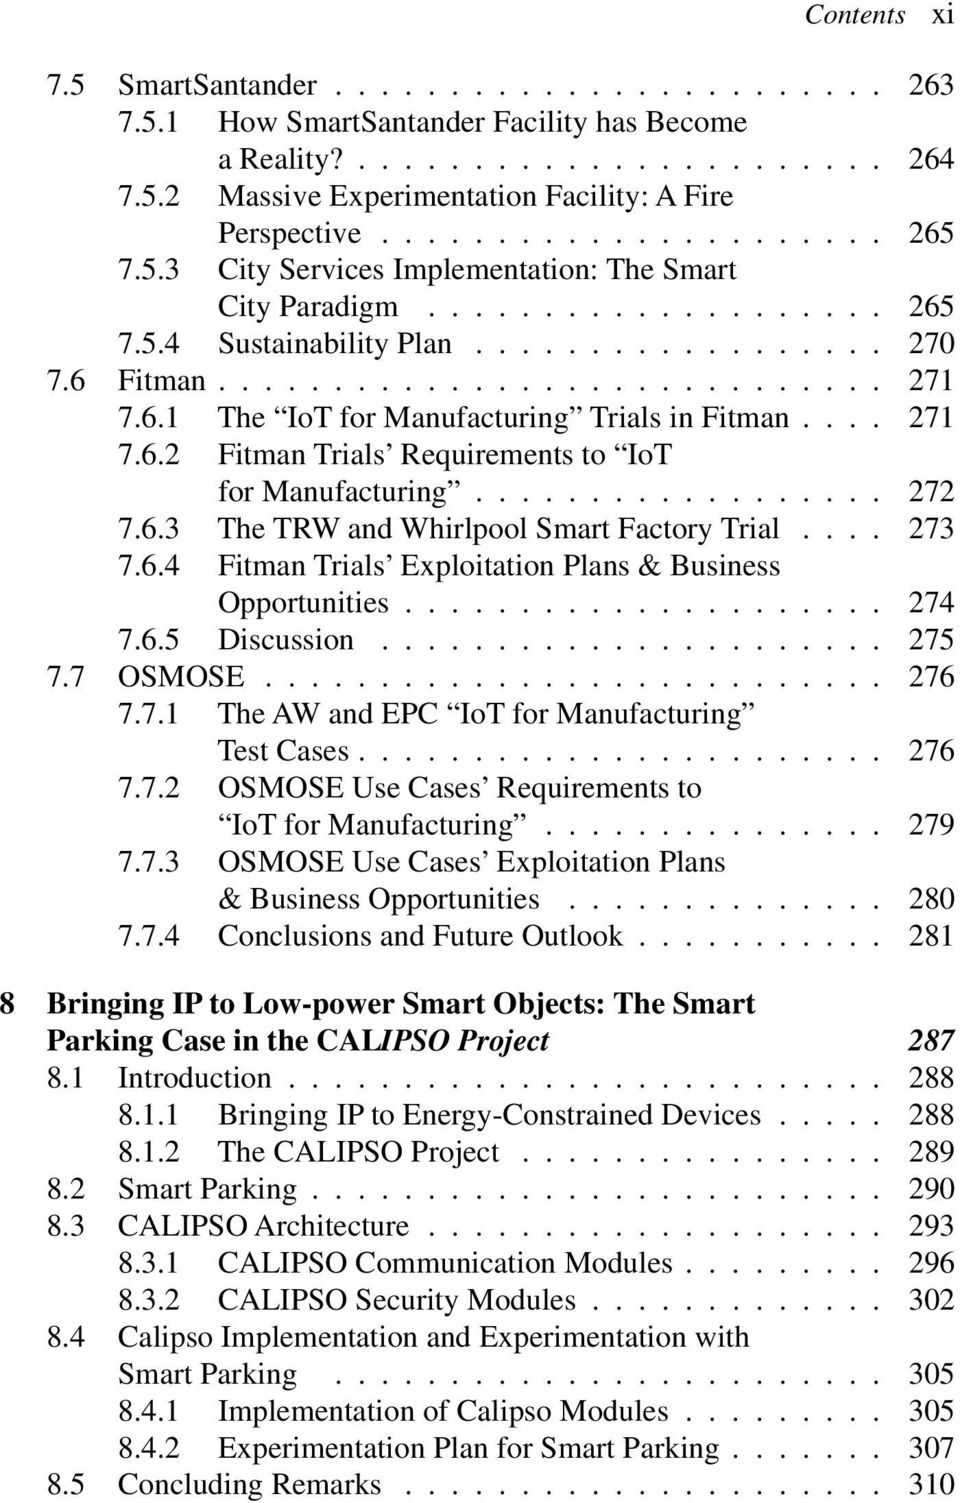 .. 273 7.6.4 Fitman Trials Exploitation Plans & Business Opportunities... 274 7.6.5 Discussion... 275 7.7 OSMOSE... 276 7.7.1 The AW and EPC IoT for Manufacturing Test Cases... 276 7.7.2 OSMOSE Use Cases Requirements to IoT for Manufacturing.